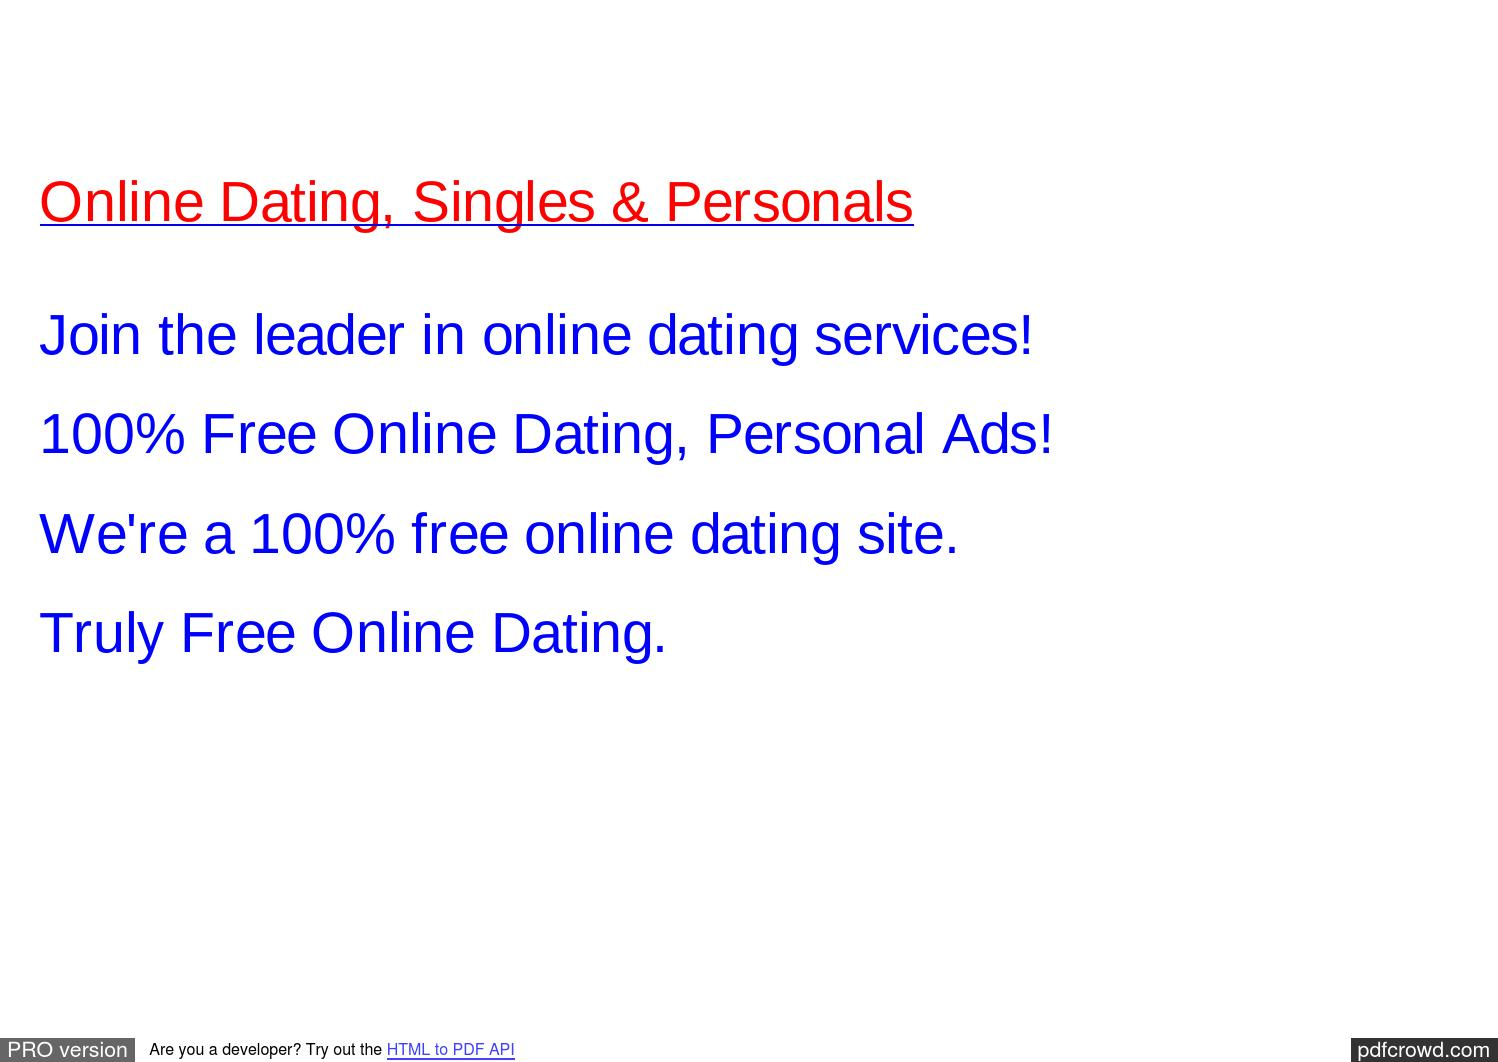 comparison of free online dating sites